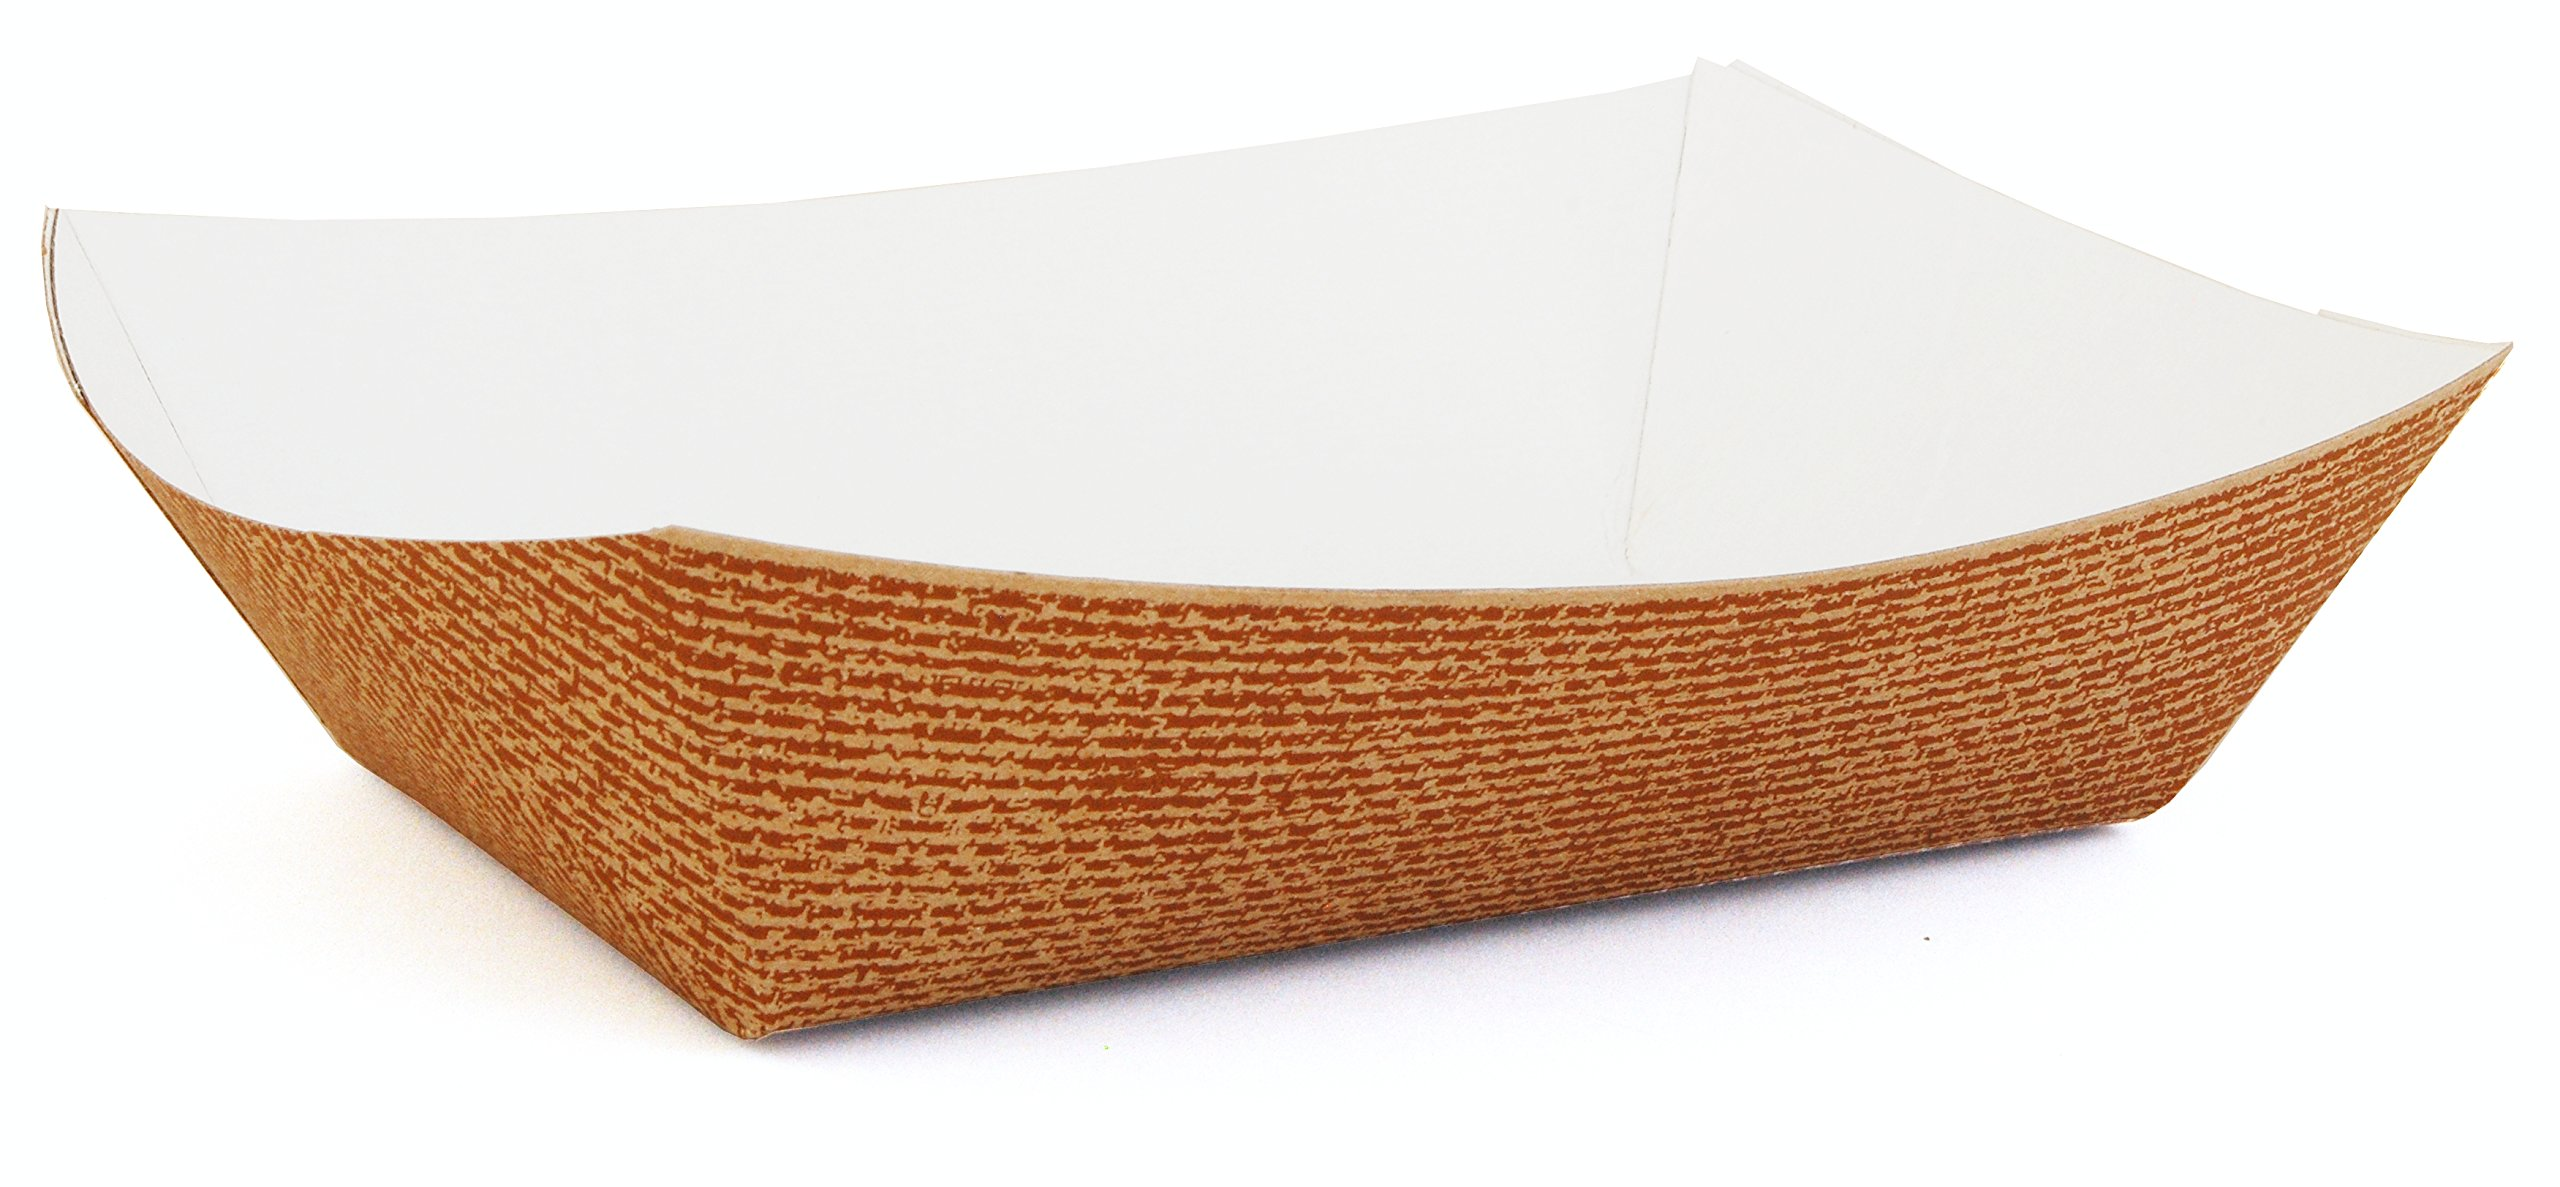 Southern Champion Tray 0566#300 Hearthstone Clay Coated Paperboard Food Tray/Boat/Bowl, 3 lb Capacity (Case of 500)